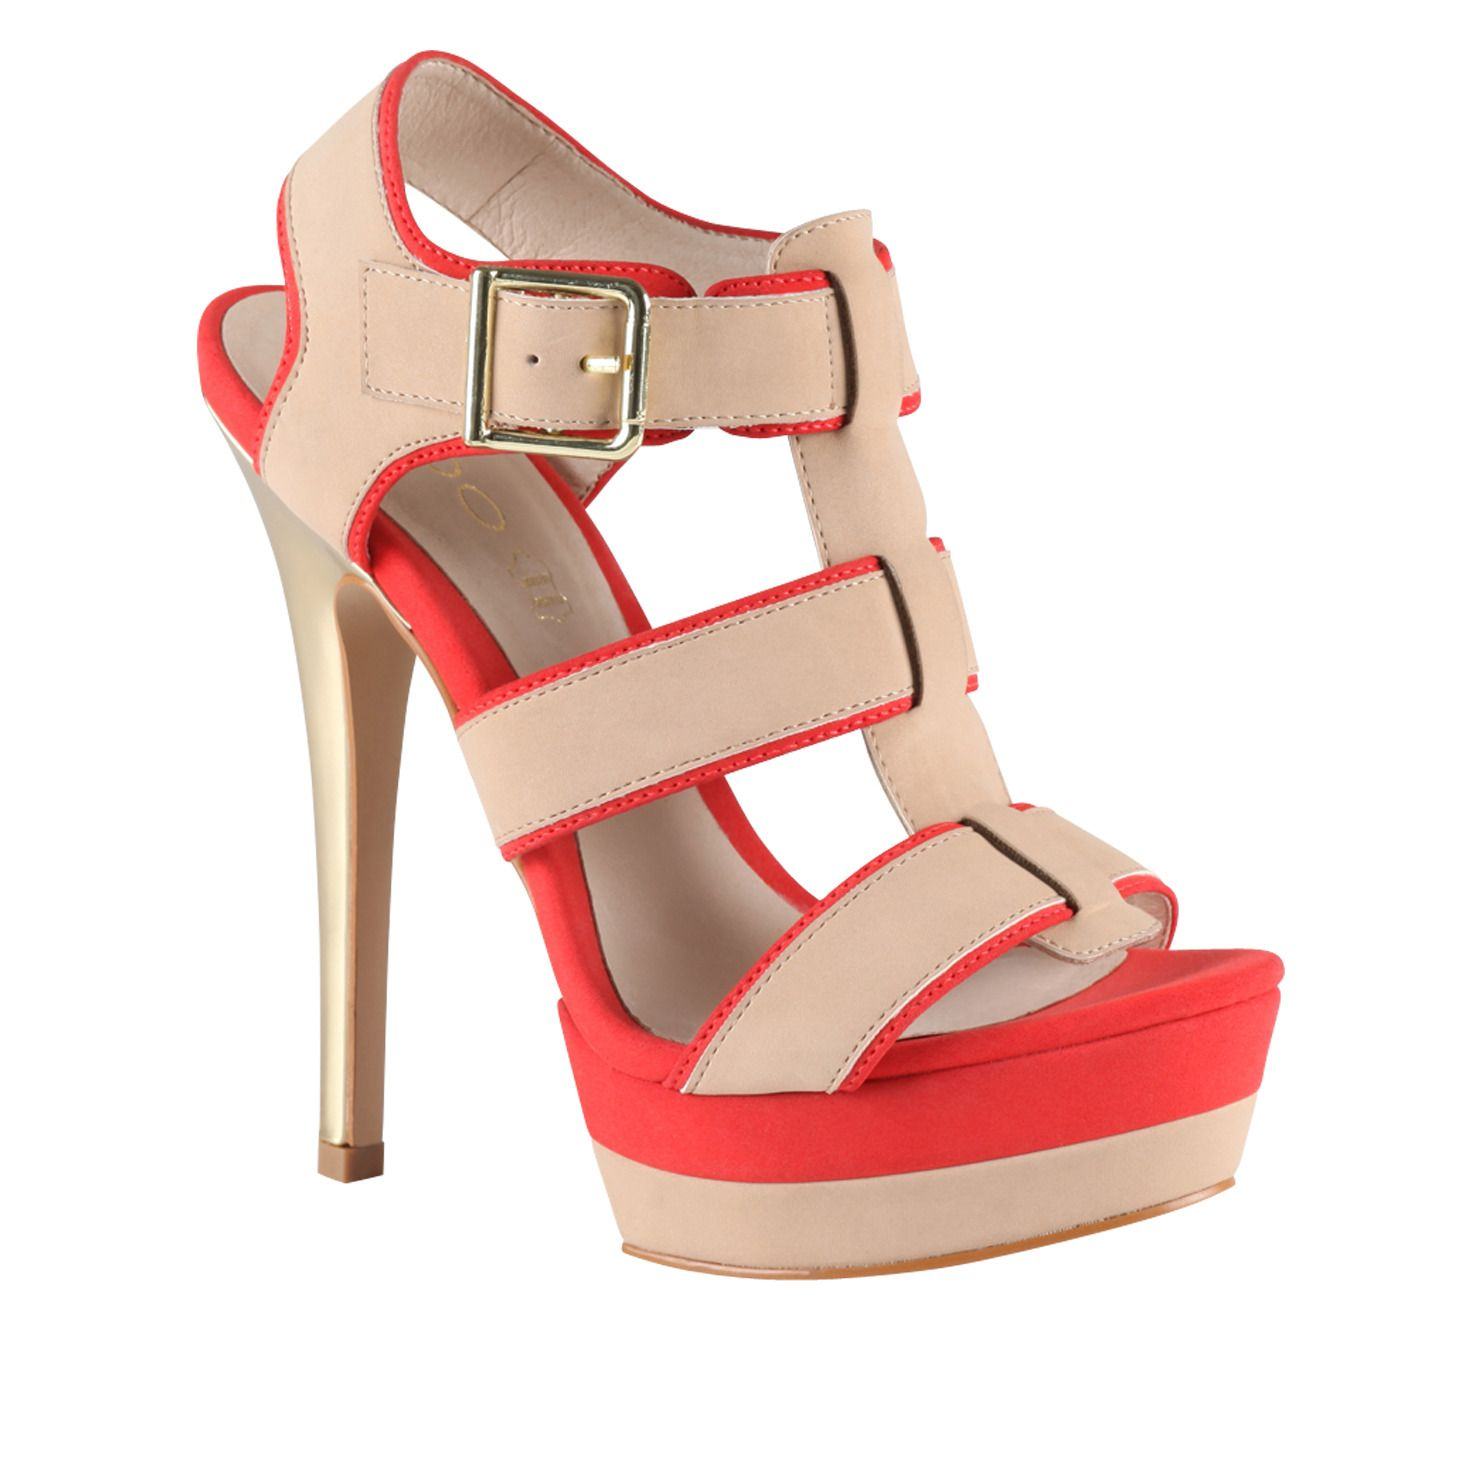 DHARINEE - womens high heels sandals for sale at ALDO Shoes ...